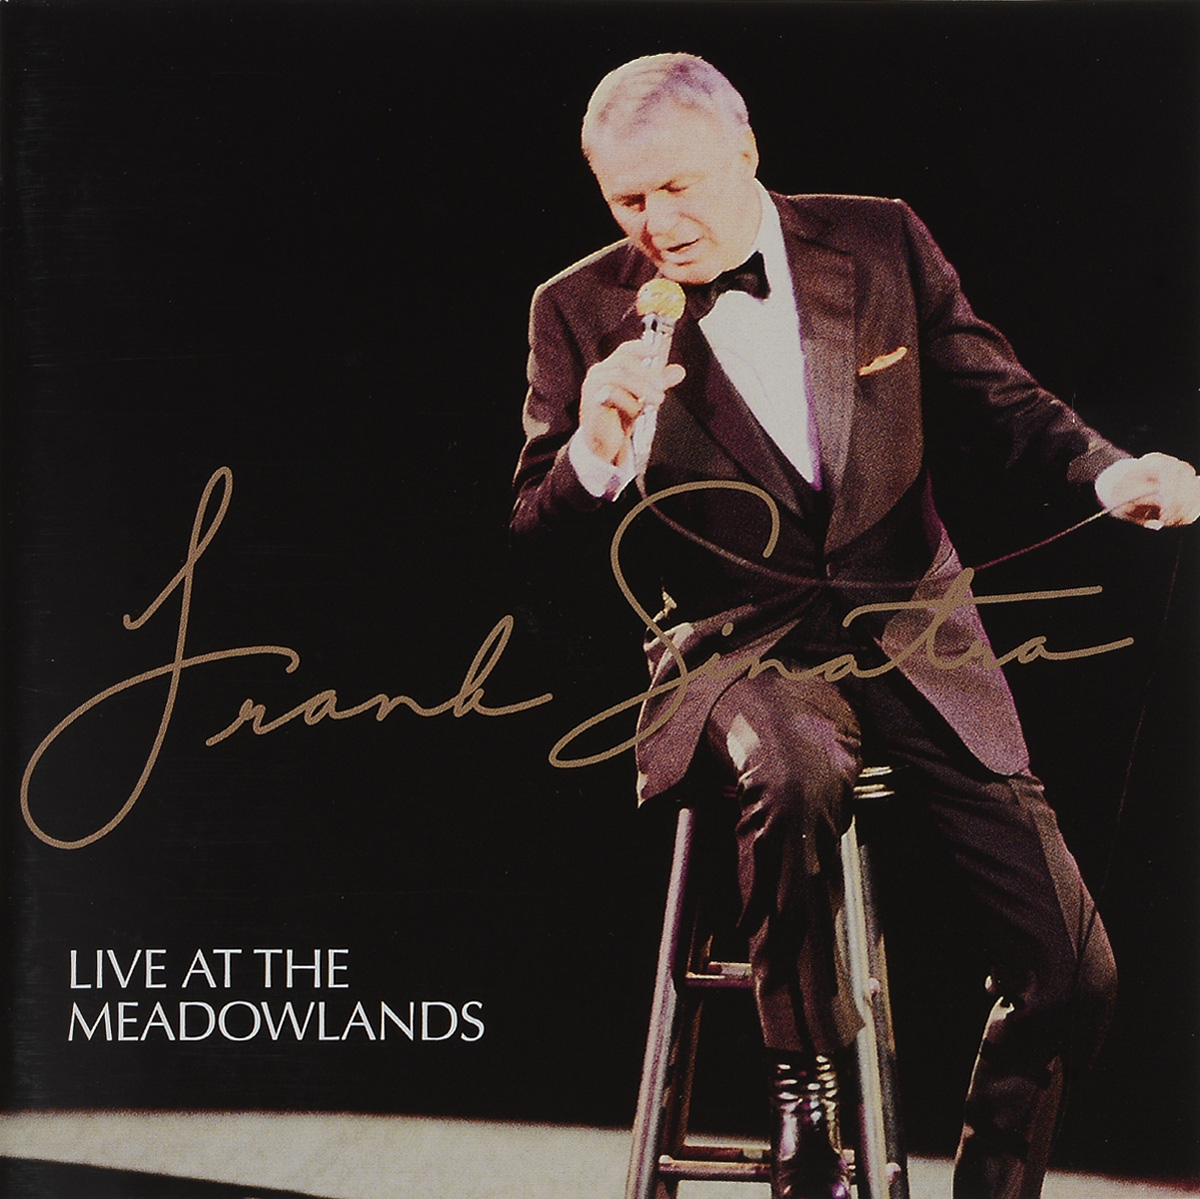 Фрэнк Синатра Frank Sinatra. Live At The Meadowlands cicero sings sinatra live in hamburg blu ray